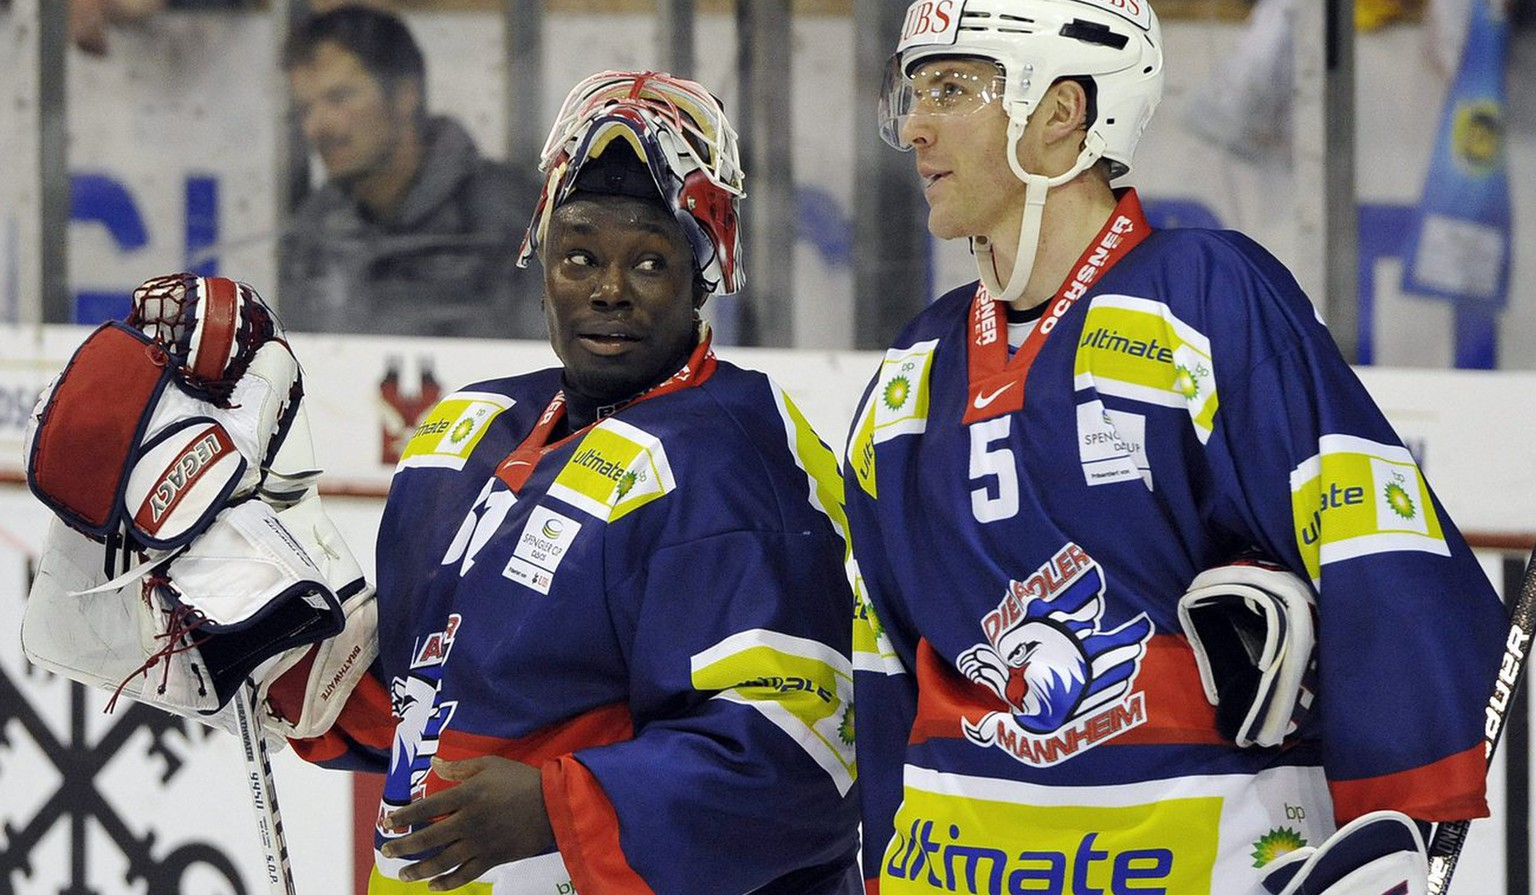 Mannheim's goalkeeper Fred Brathwaite, left, talks with his teammate Andy Hedlund during the game between Germany team Adler Mannheim and team Canada at the 83rd Spengler Cup ice hockey tournament, in Davos, Switzerland, Tuesday, December 29, 2009. (KEYSTONE/Peter Schneider)